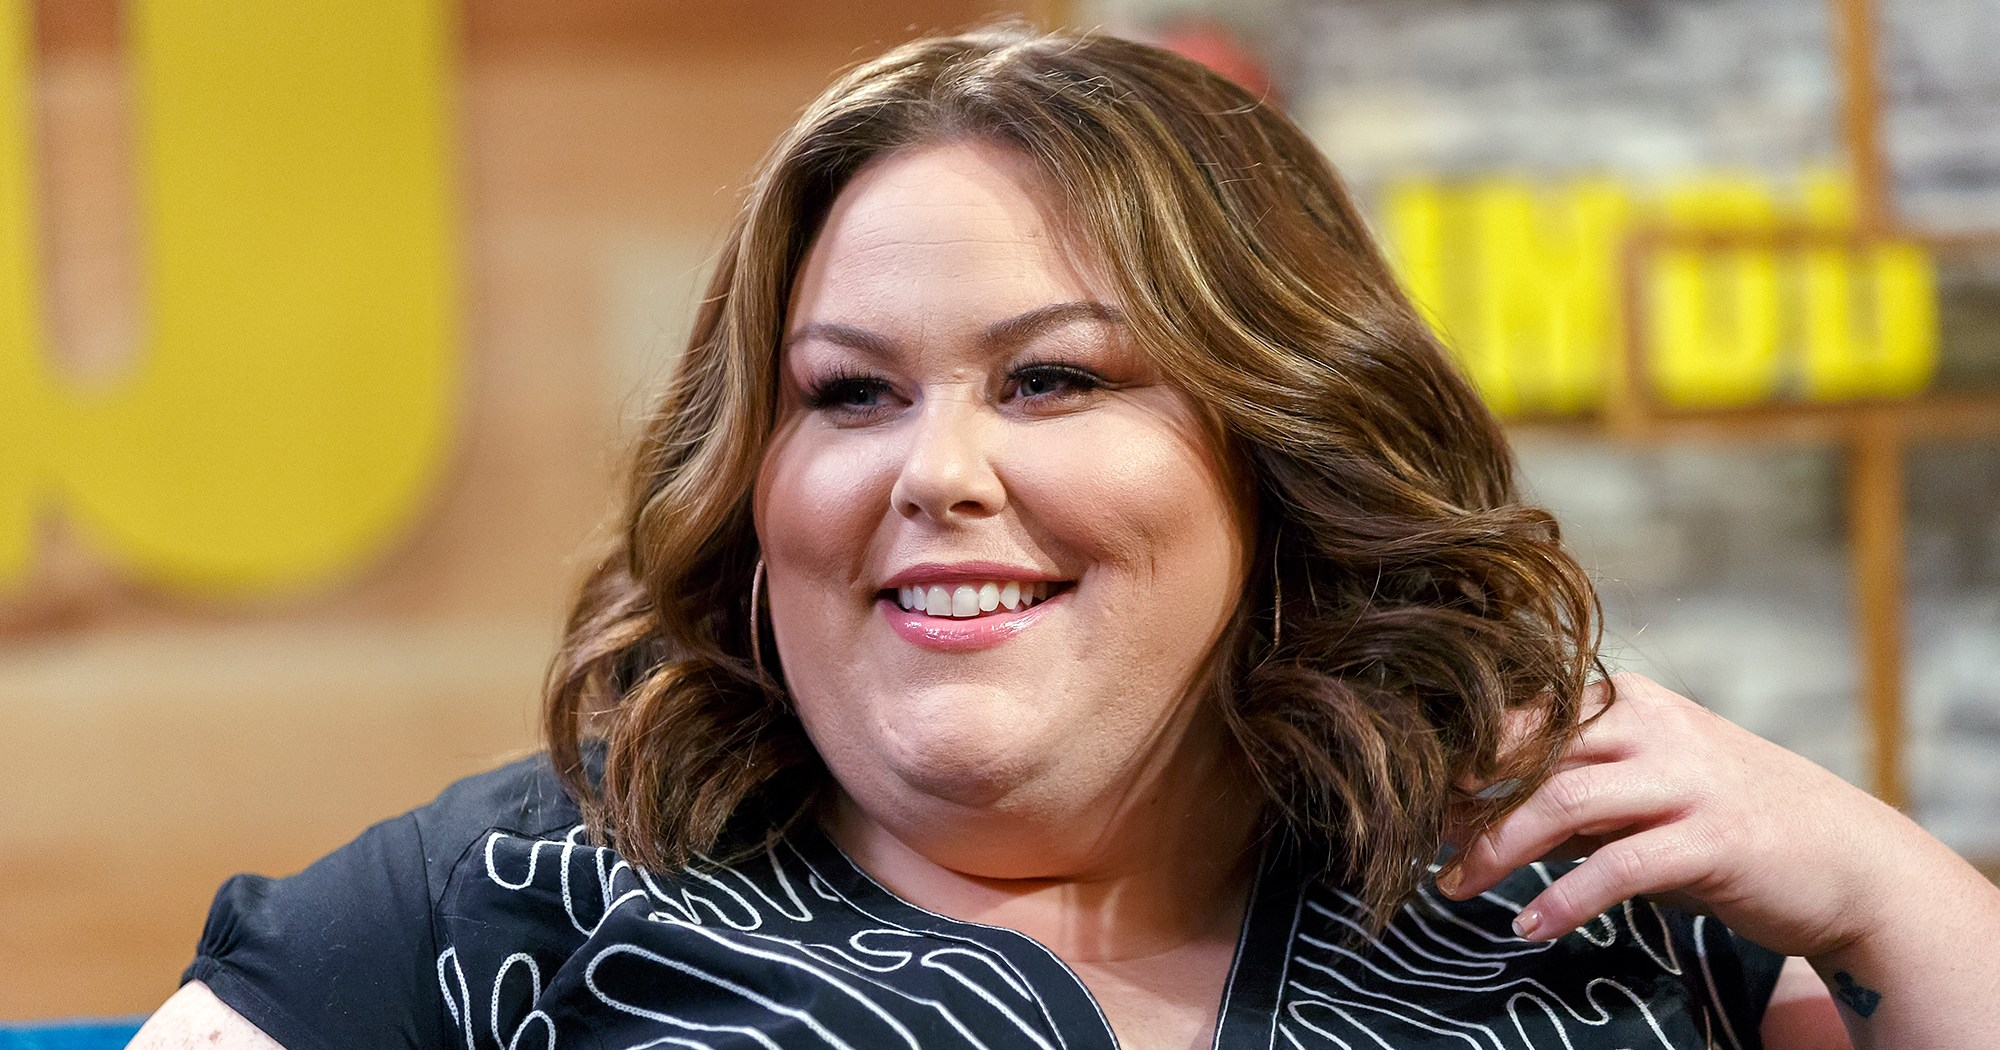 Chrissy Metz Goes Ham for Animated Role in 'Kung Fu Panda' Series